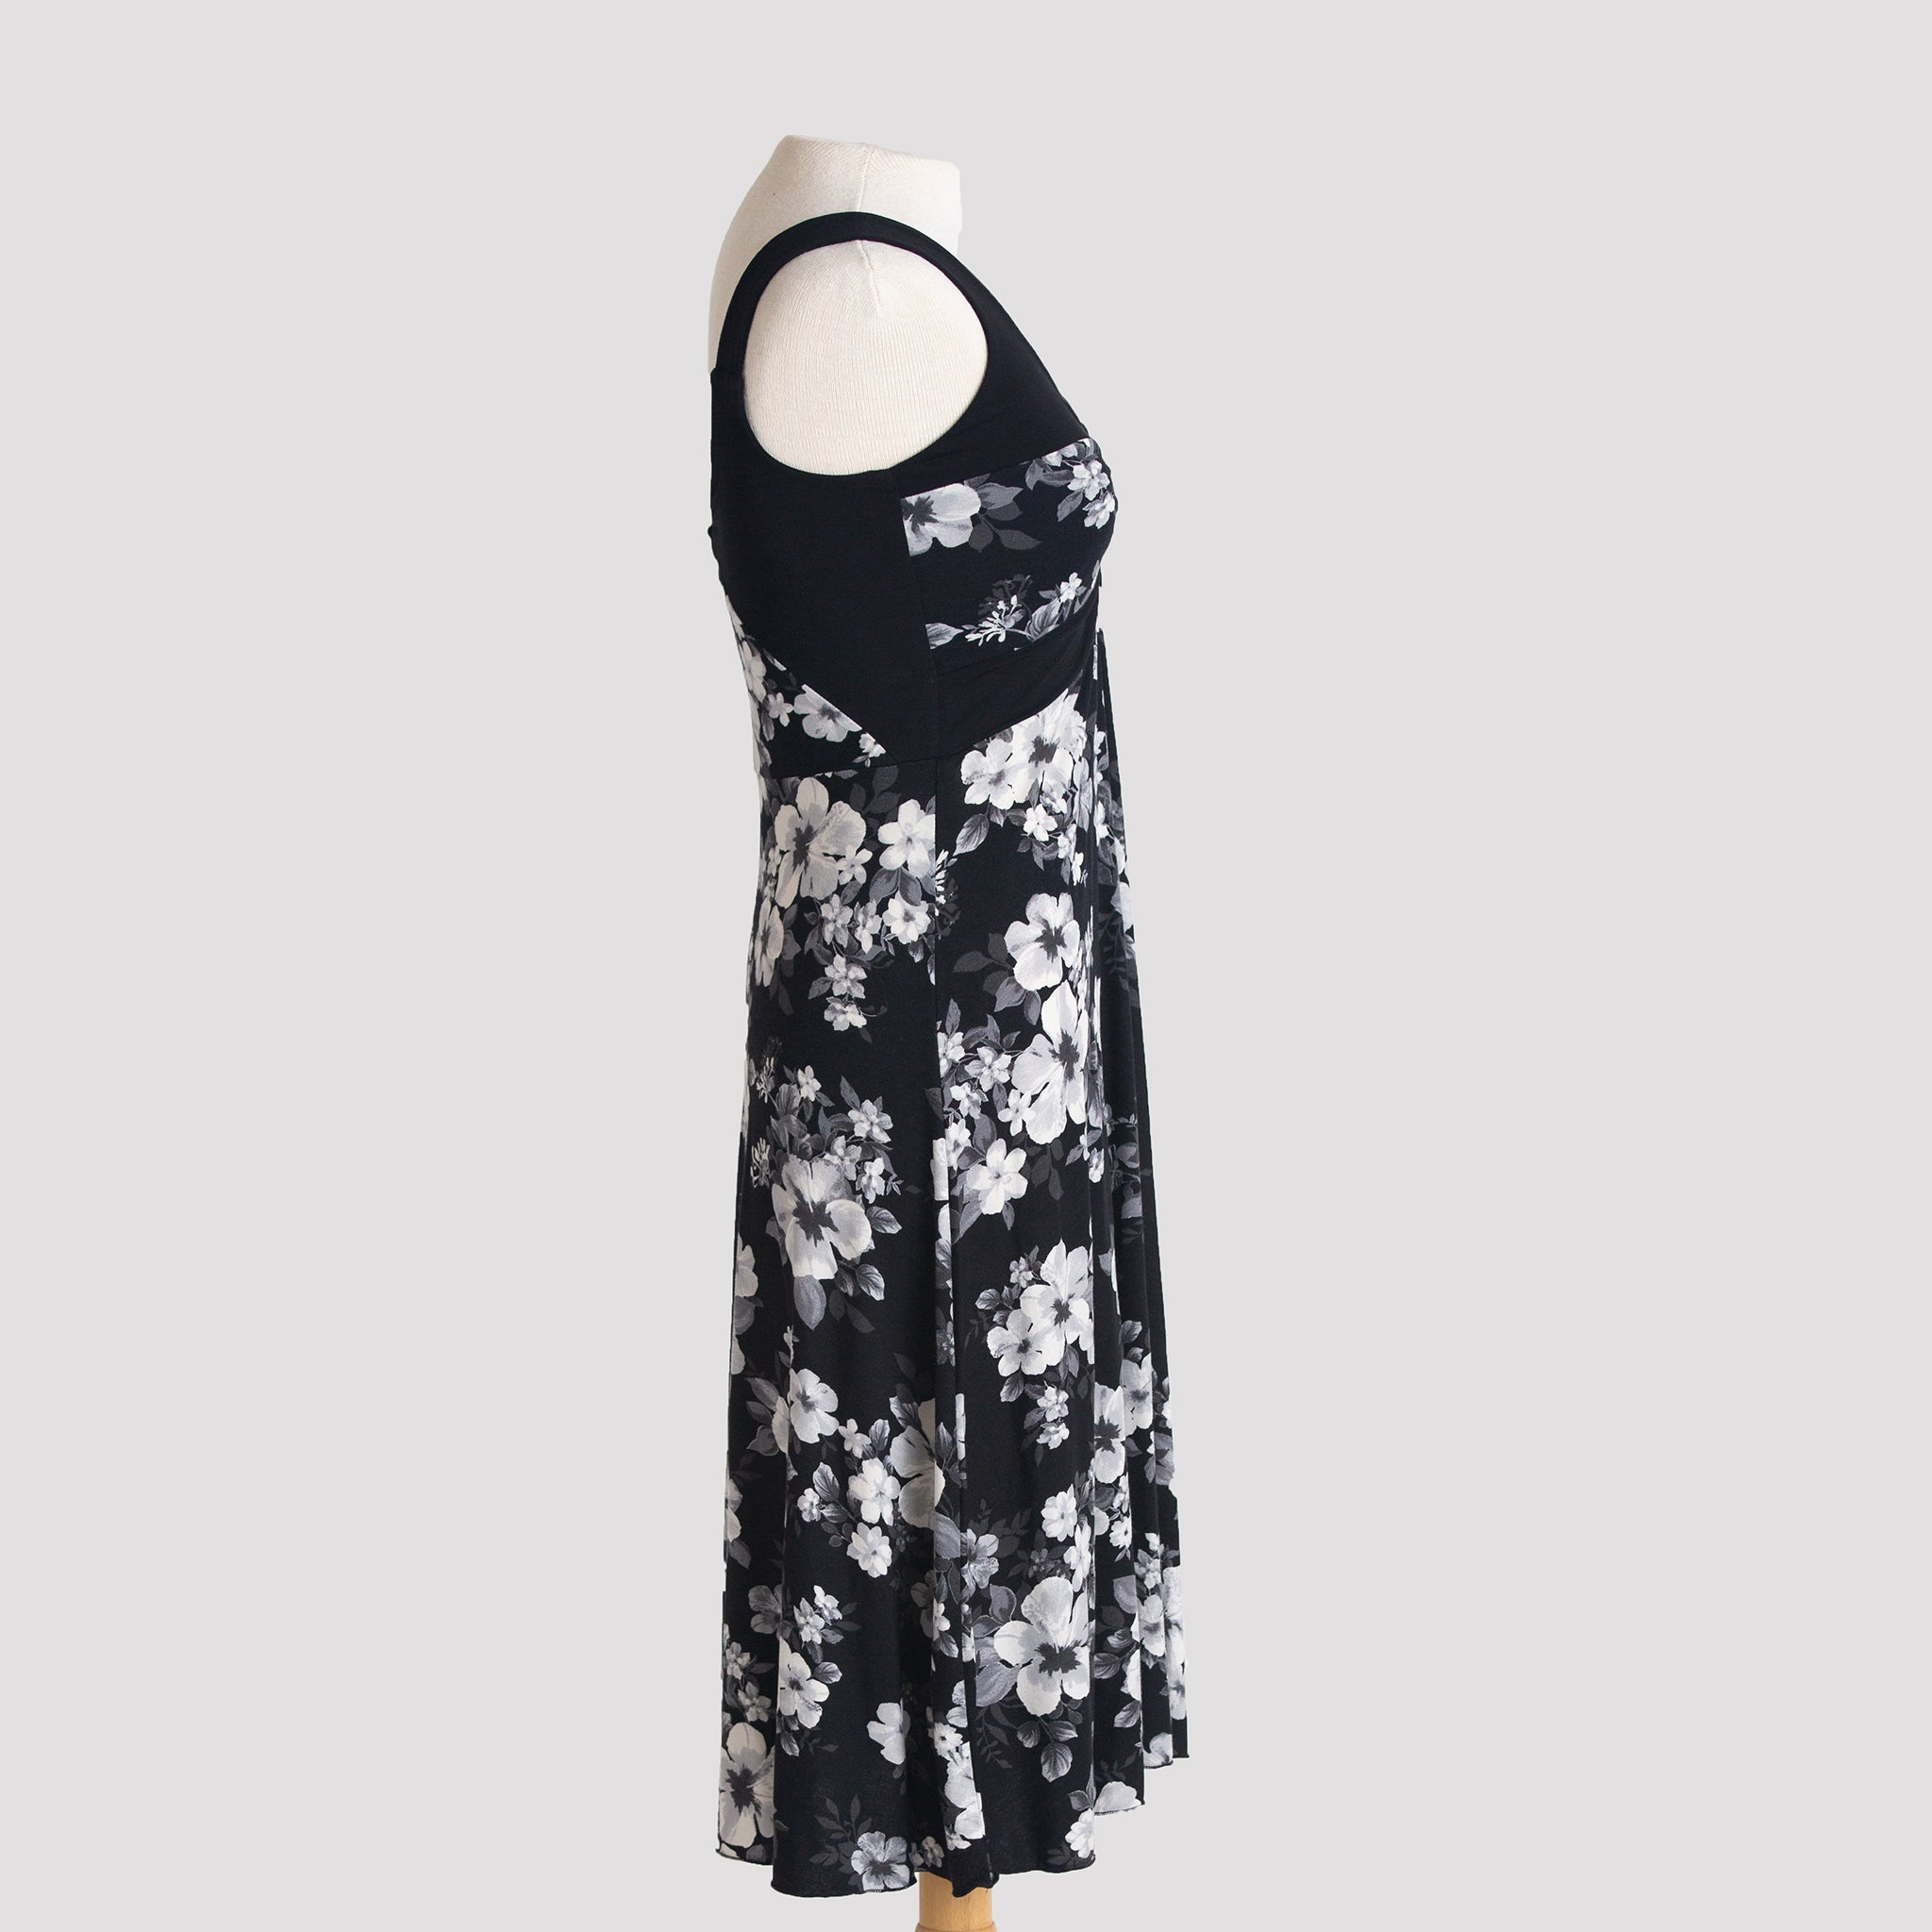 Ailana Dress in Black Hibiscus